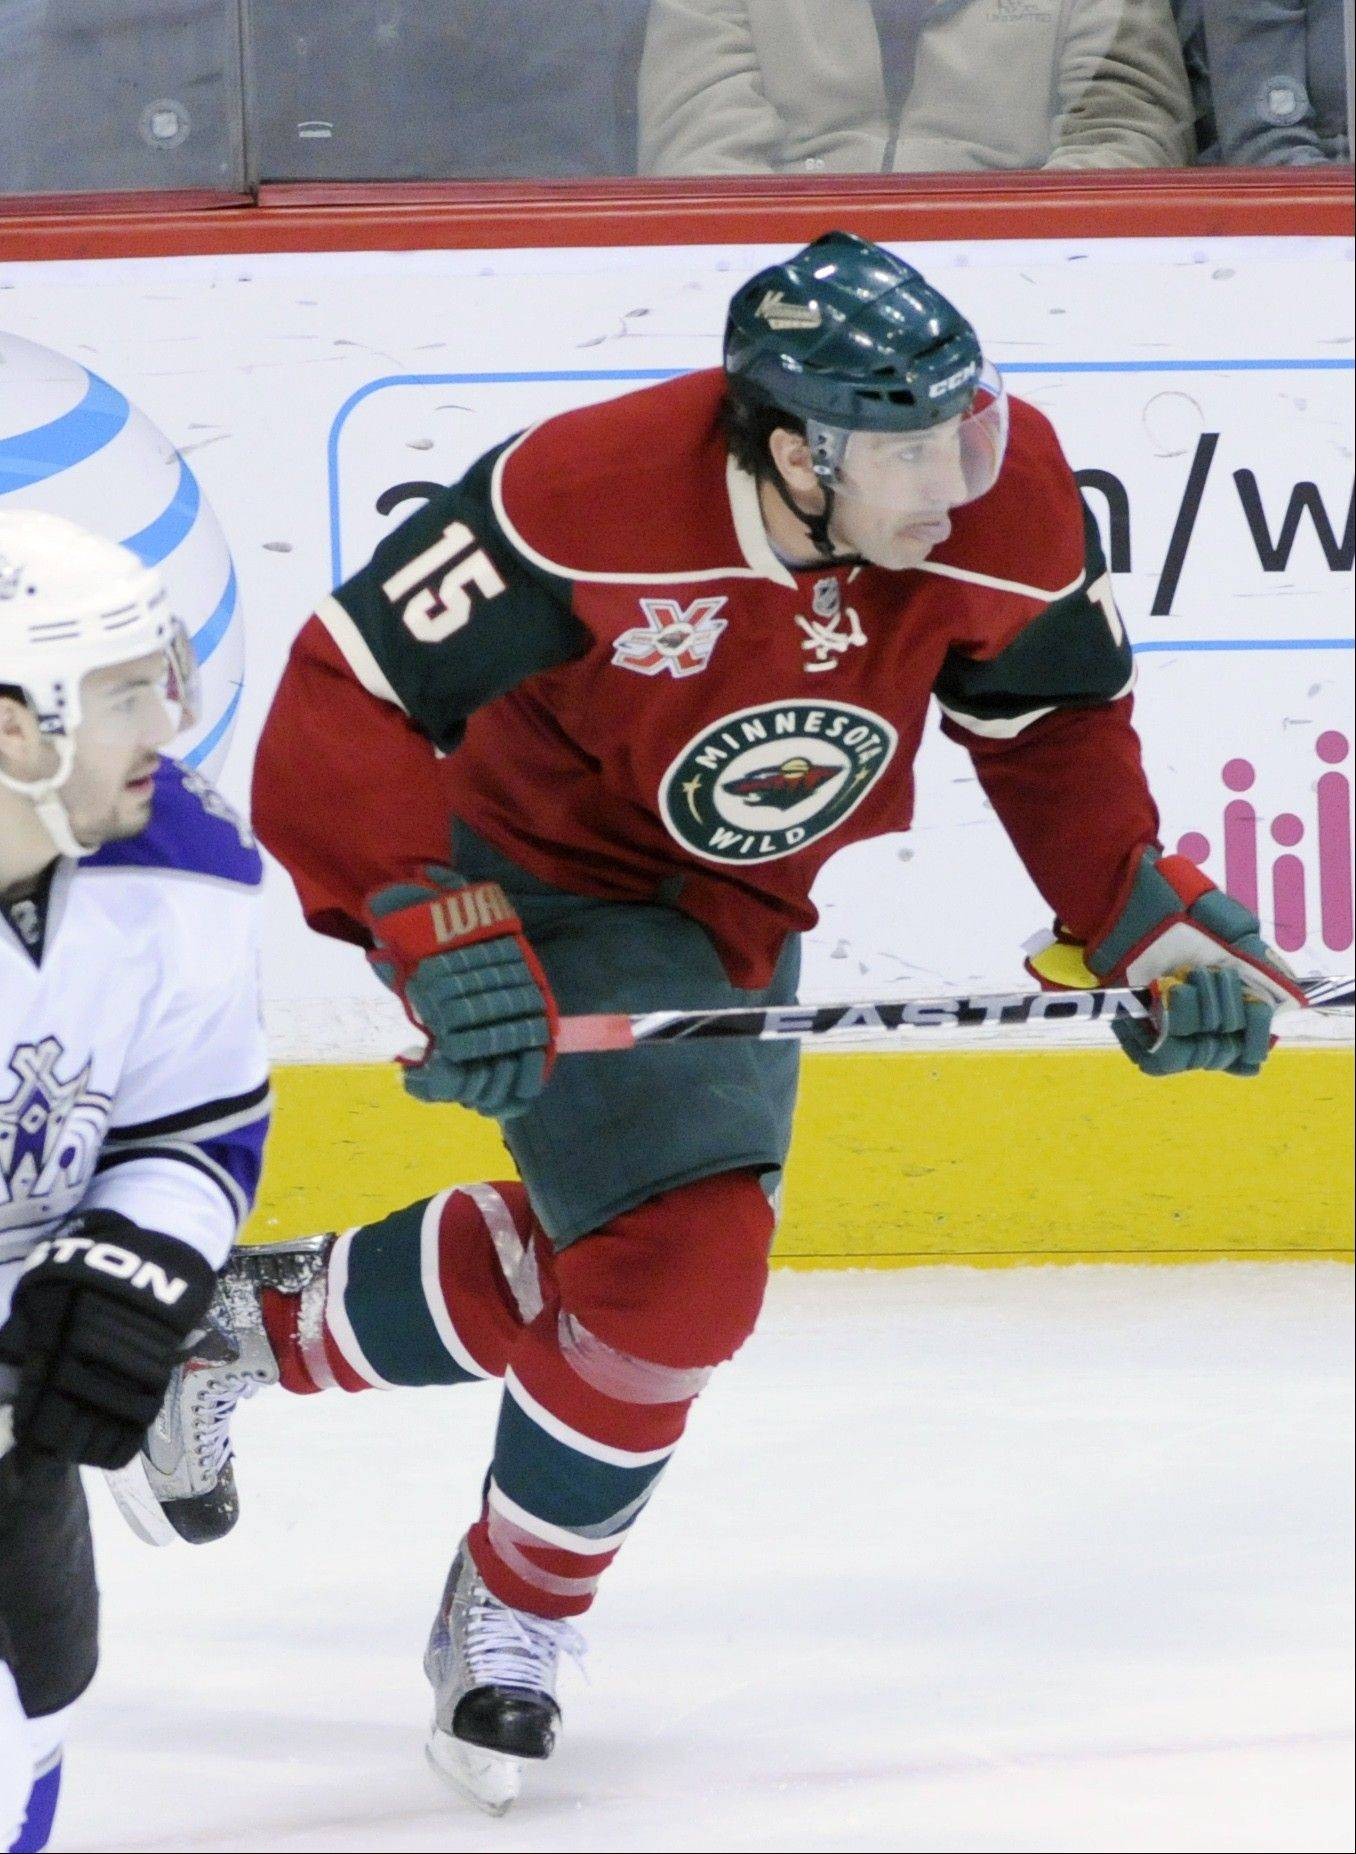 Former Minnesota Wild forward Andrew Brunette is excited about playing for the Blackhawks and his former coach in Phoenix, Joel Quenneville. Brunette is considered a crafty player in tight and should help establish a net-front presence on the Hawks power play.